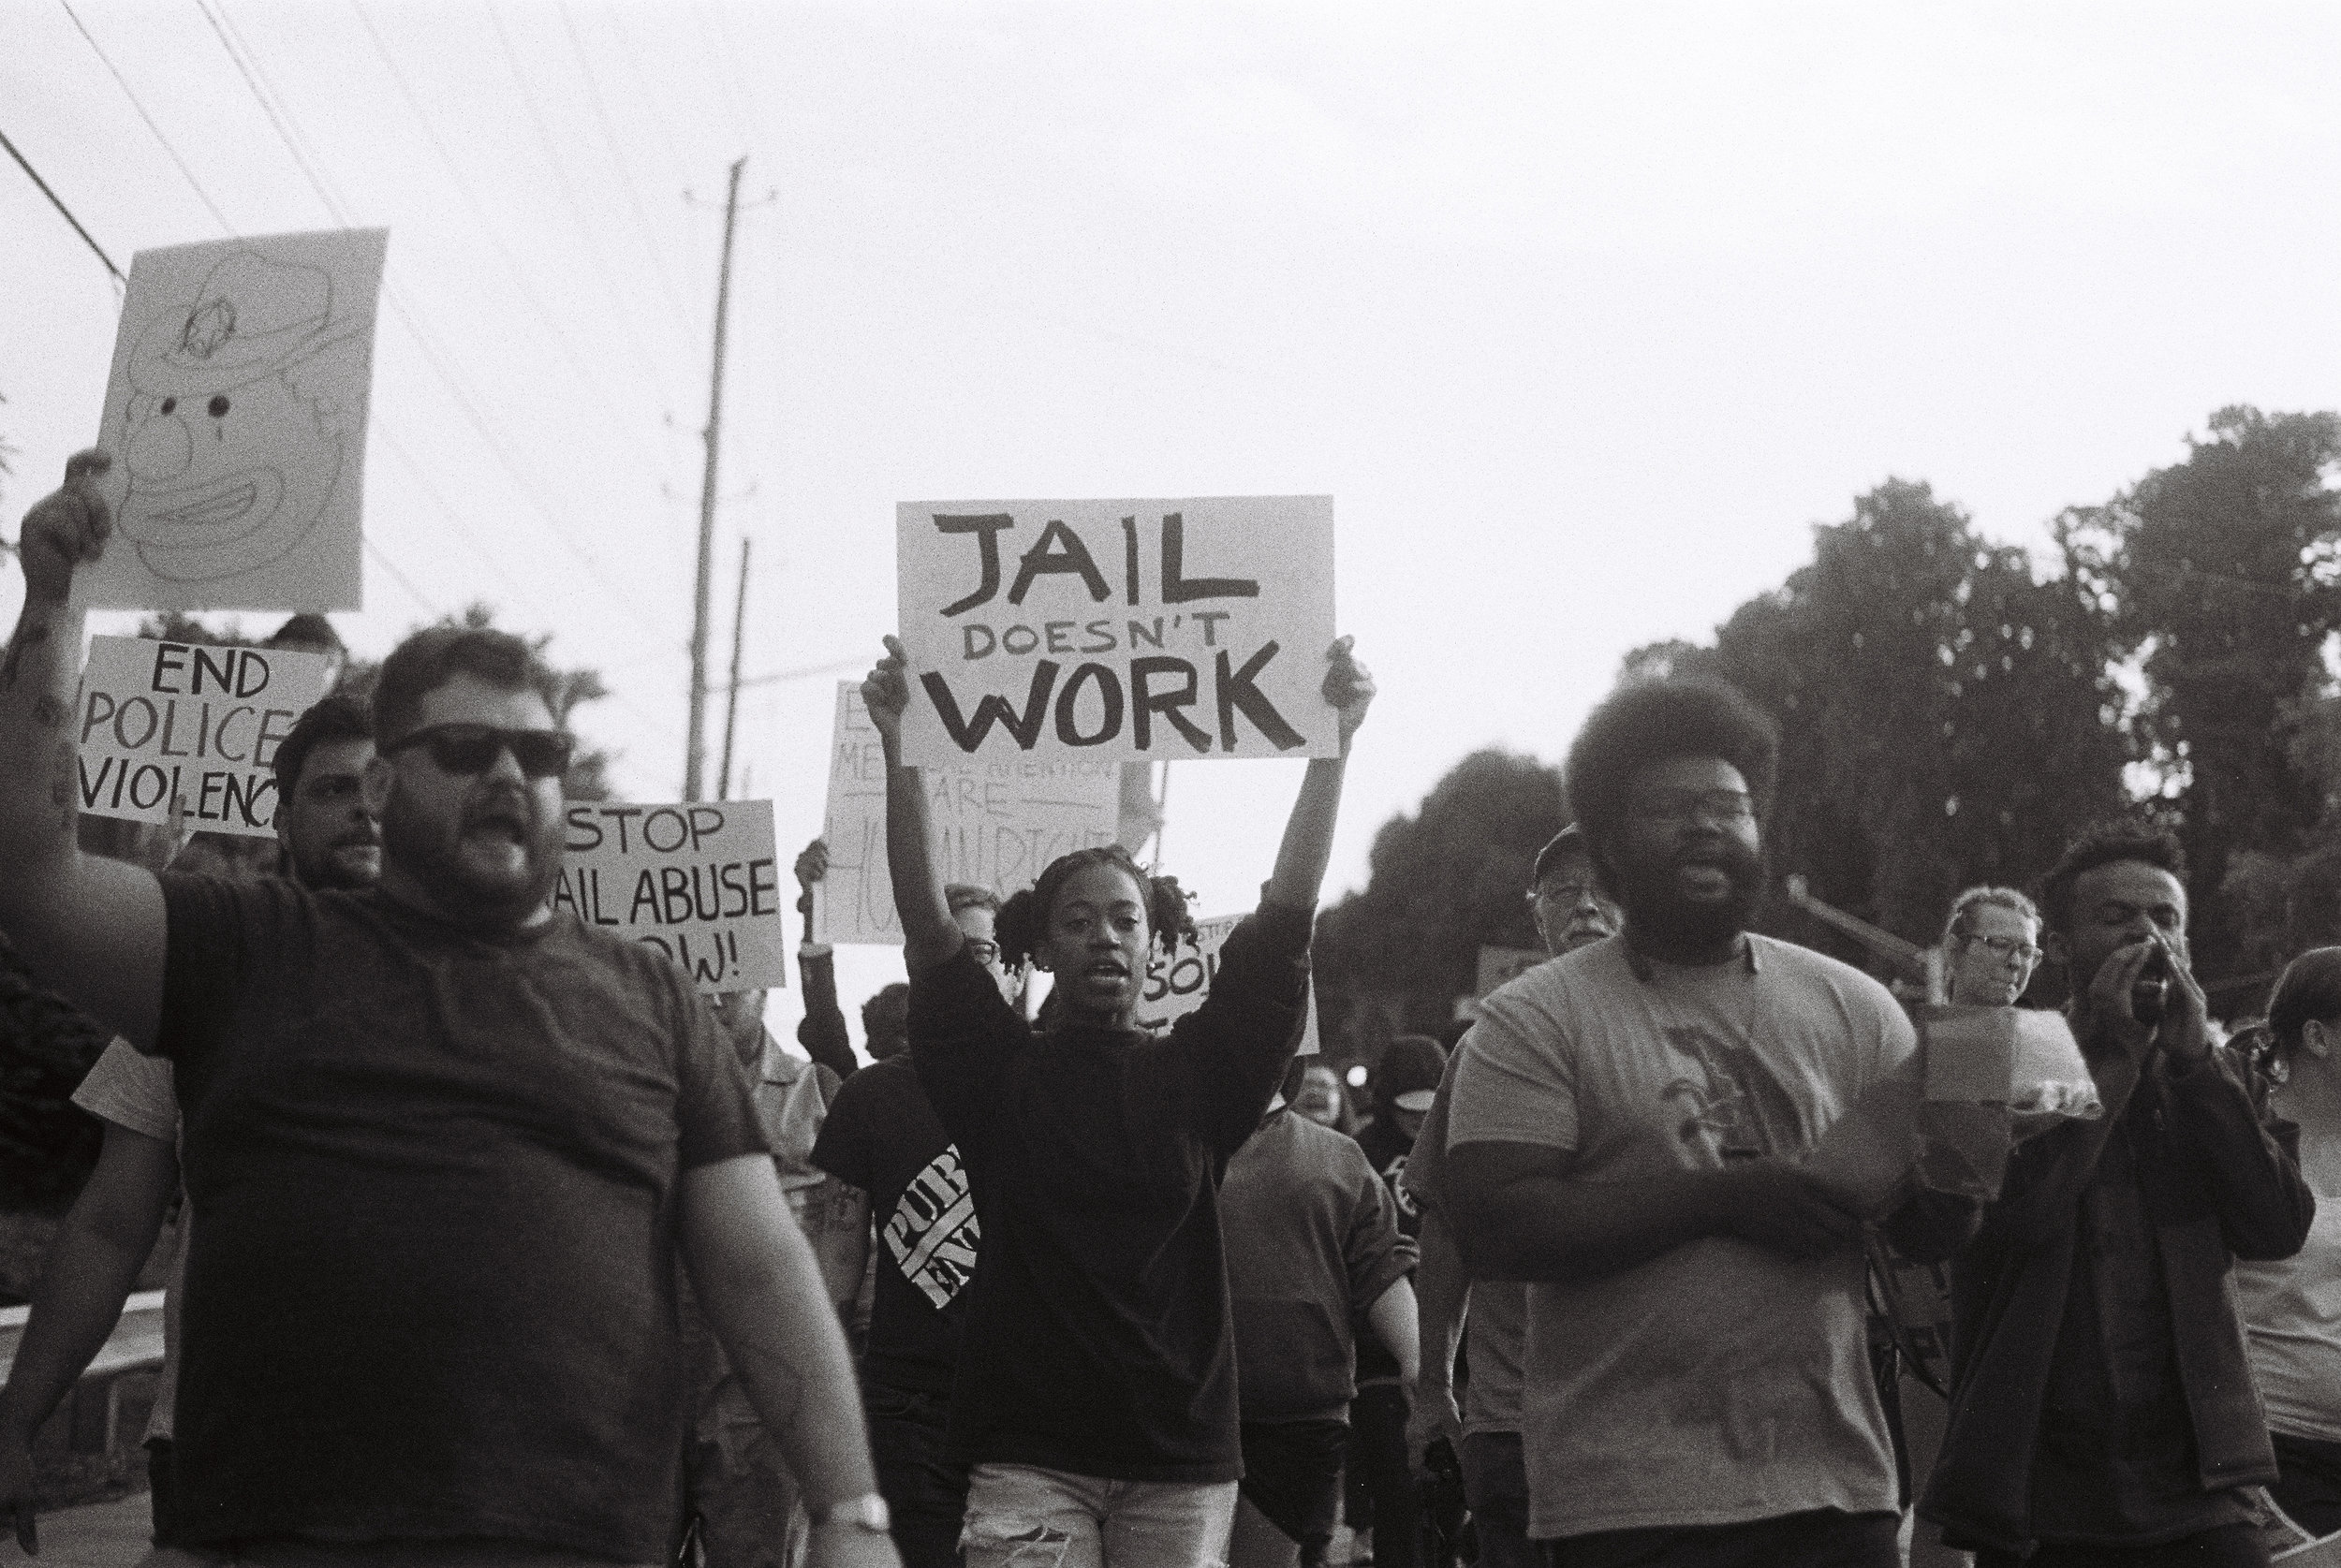 Dekalb Jail Protest. May 15 2019.